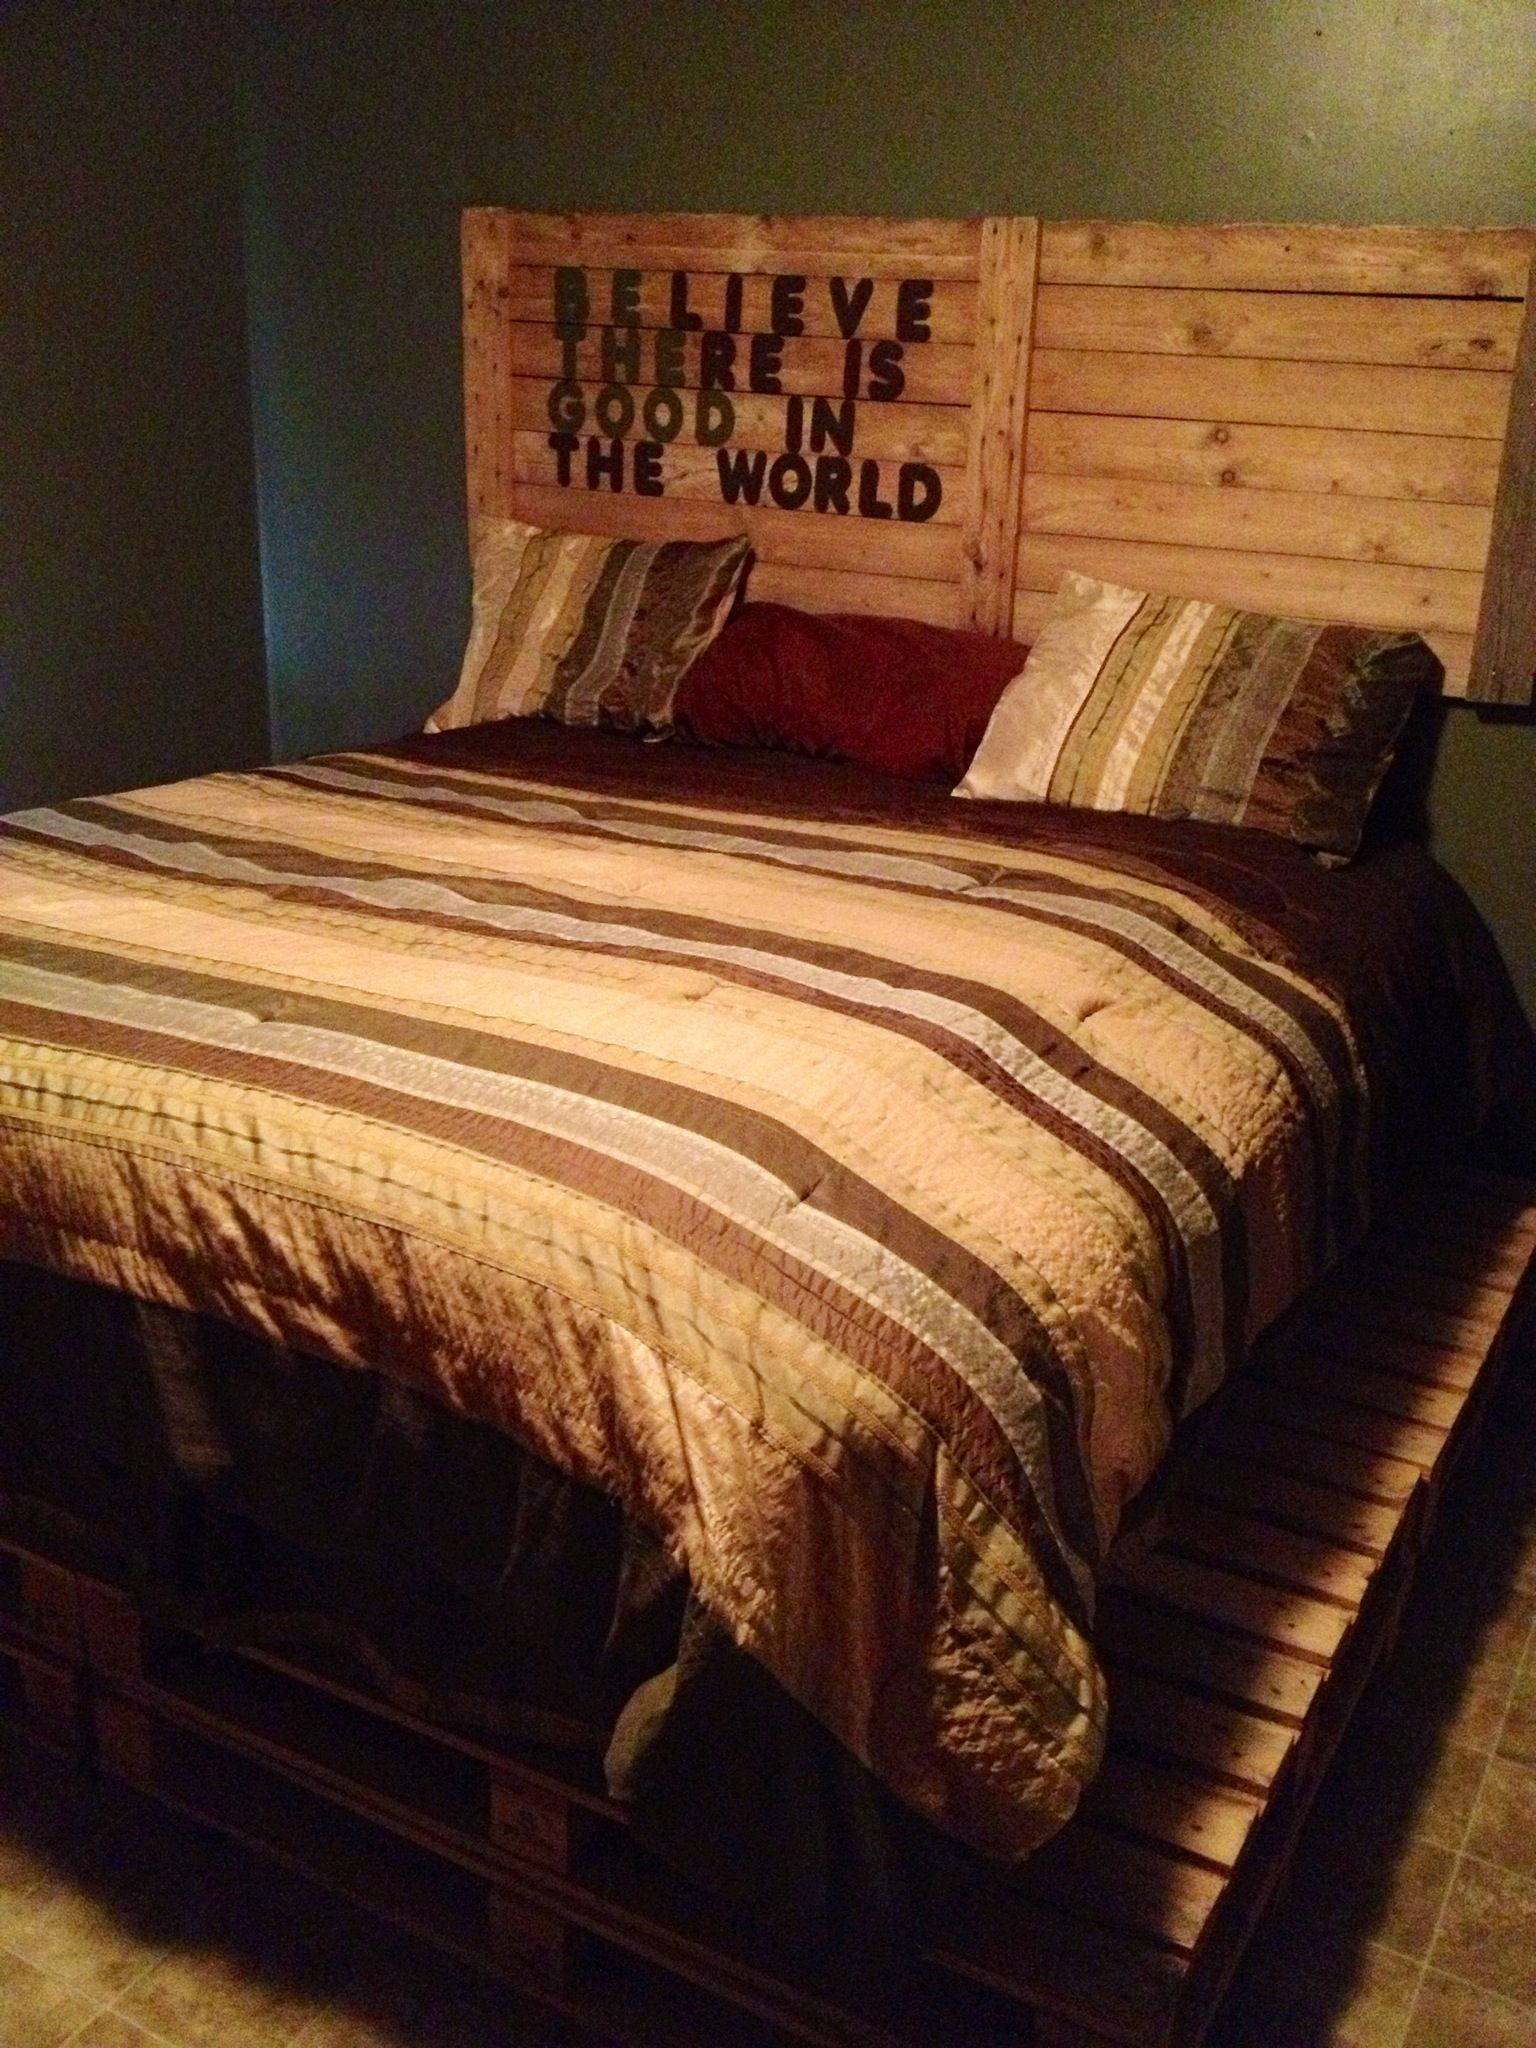 Palletten Tisch Bed Frame And Head Board Made Out Of Wooden Pallets . It